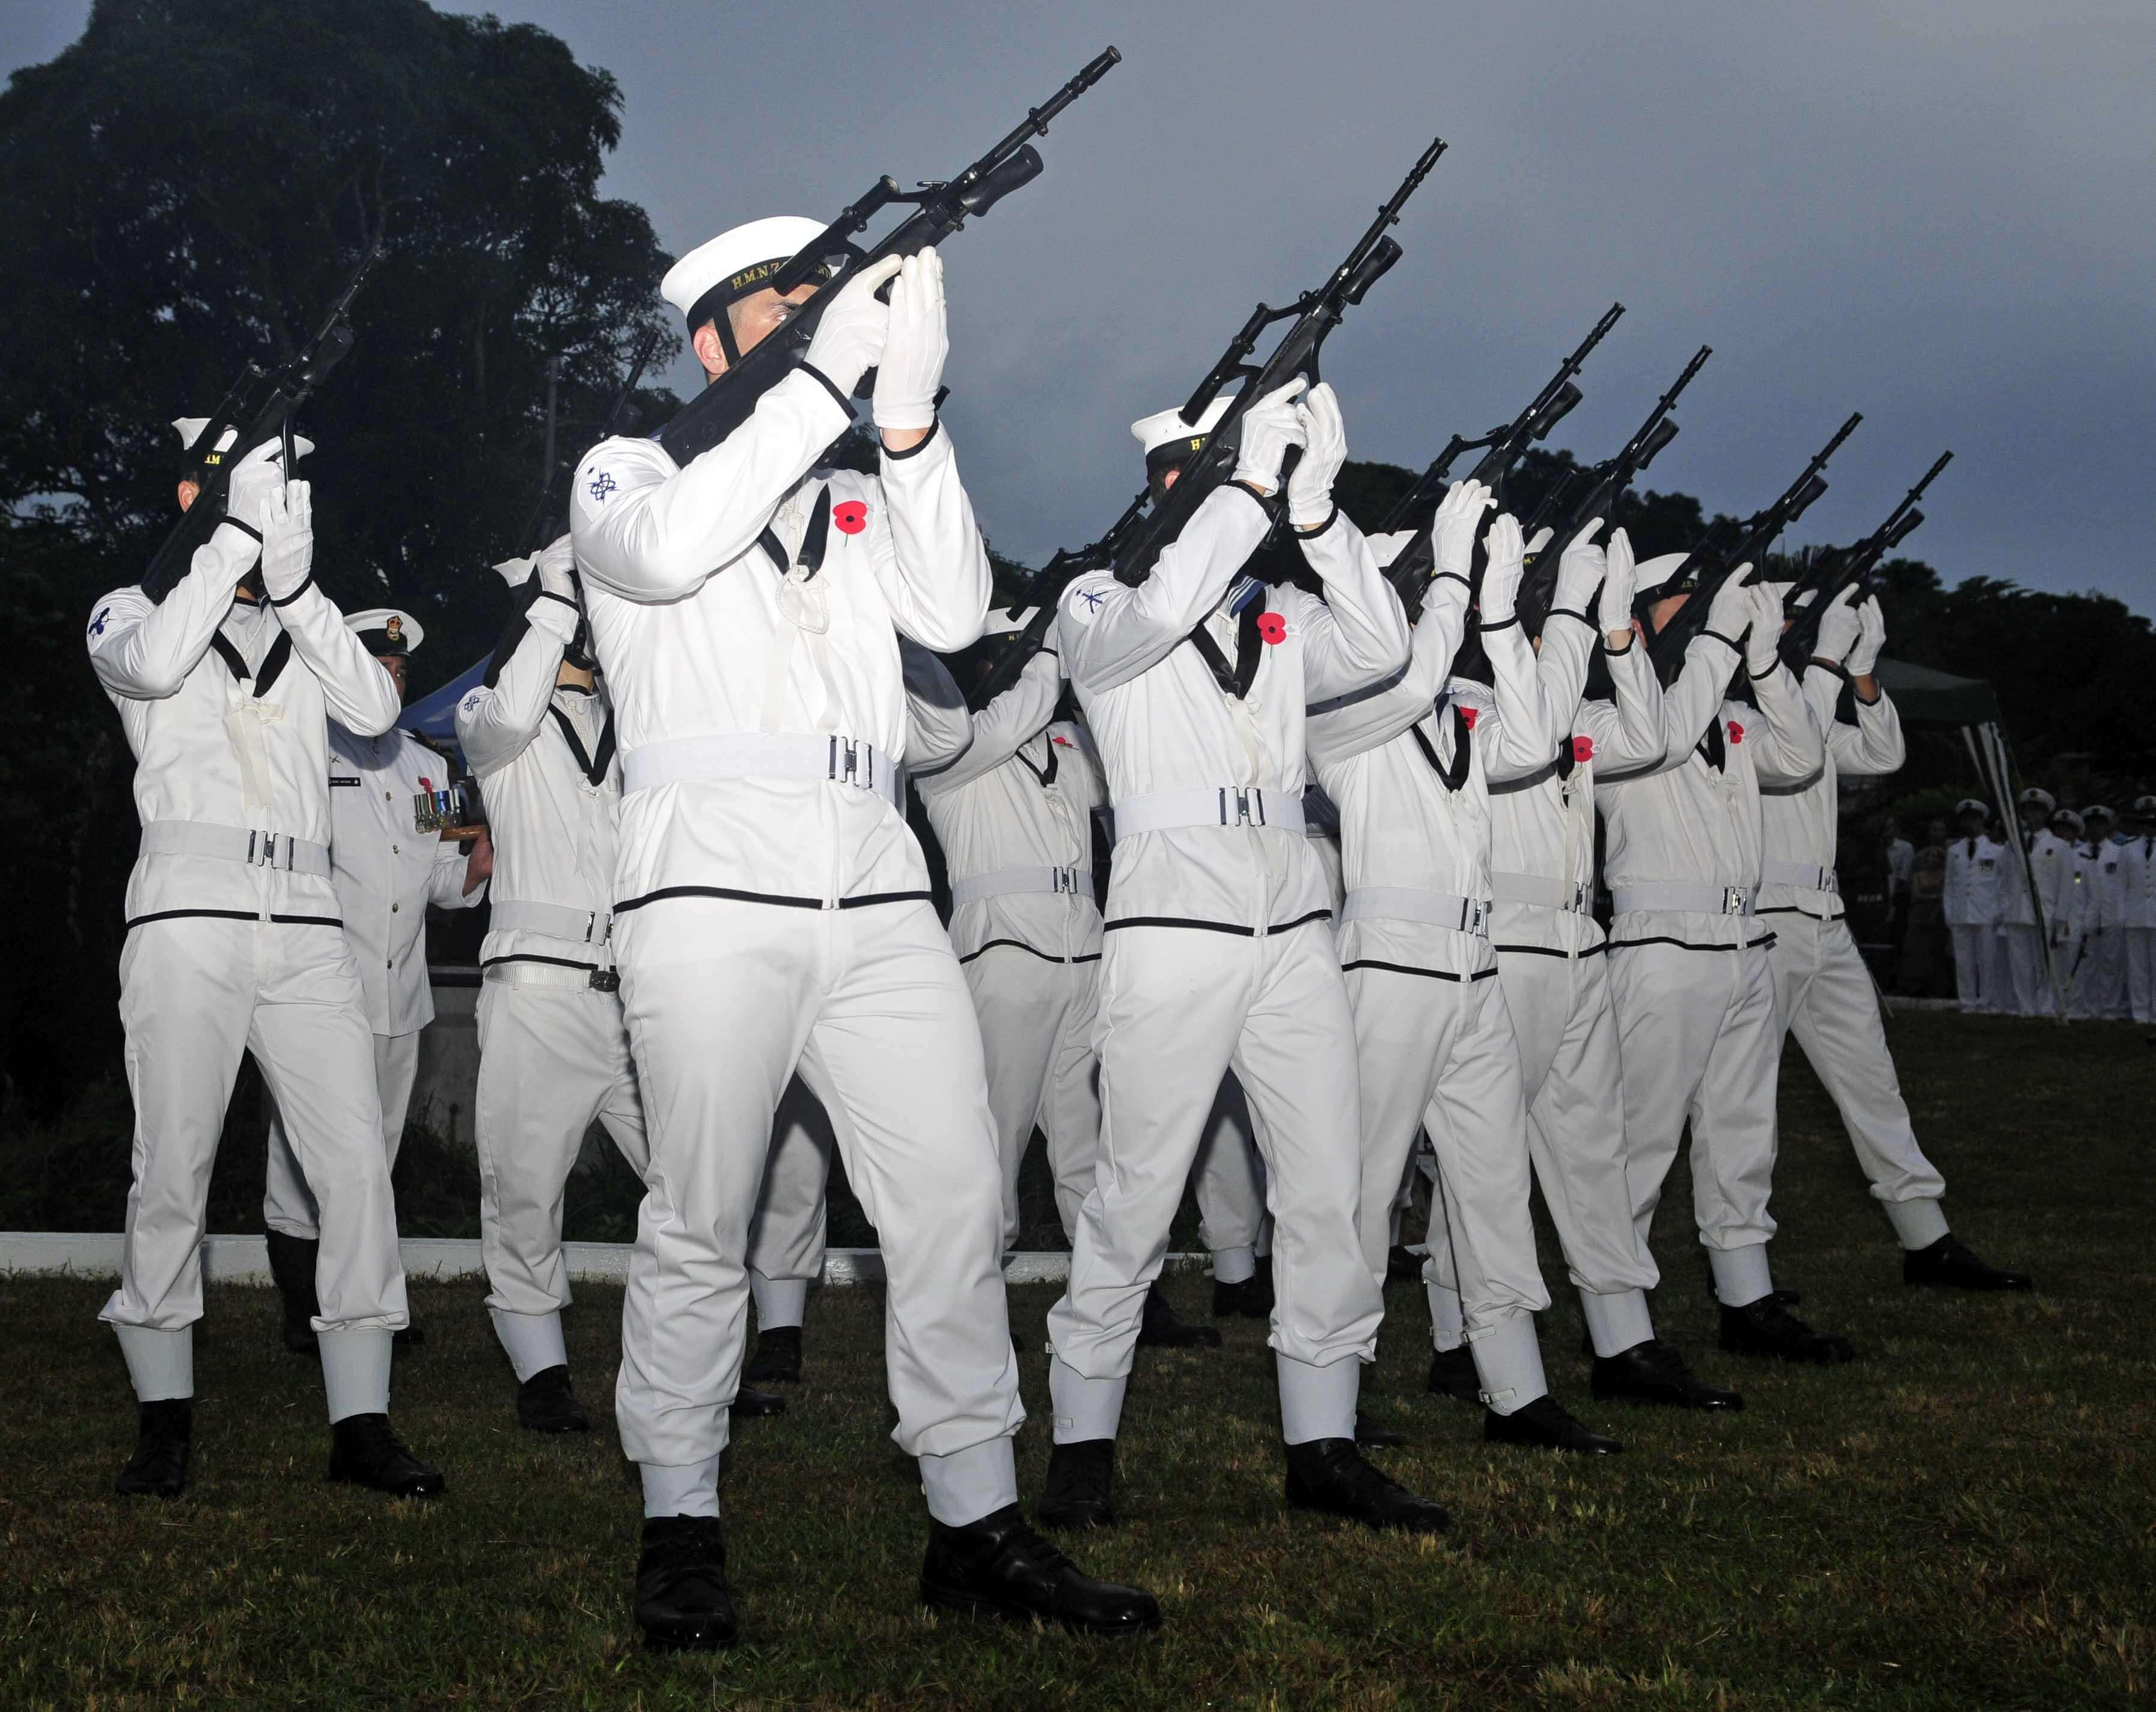 Sailors with the Royal New Zealand Navy render a gun salute during an Australian New Zealand Army Core Day celebration in 2011- US department of defense